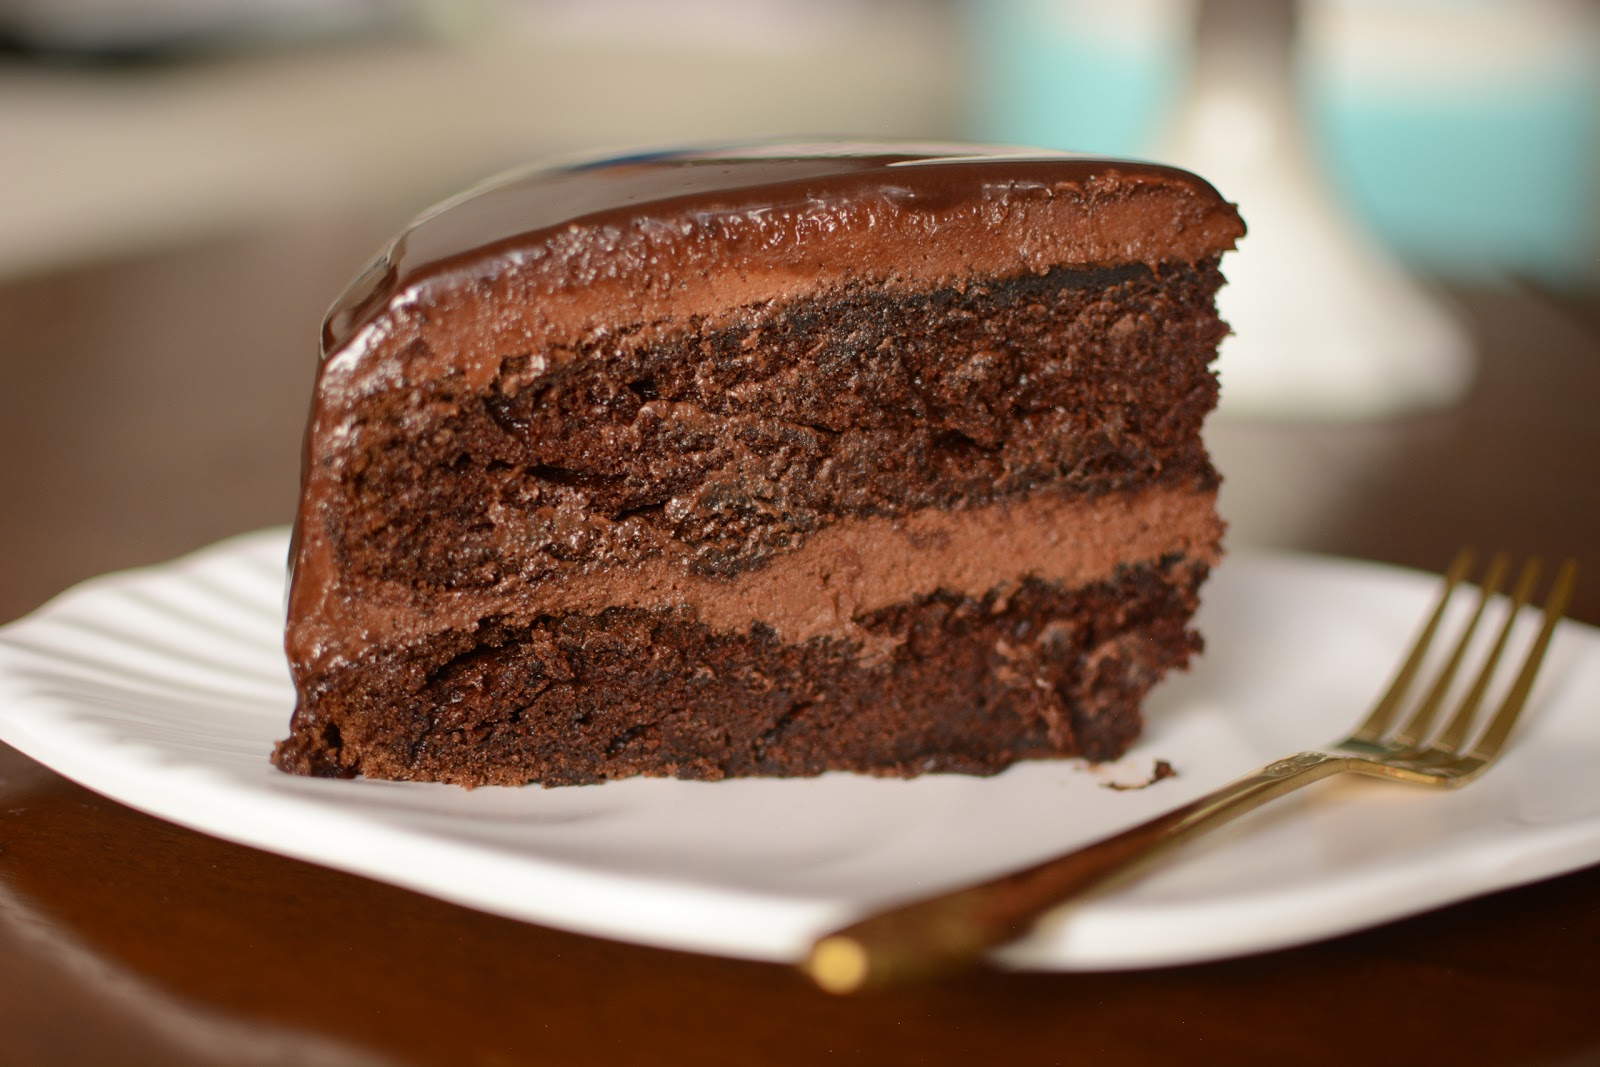 Easy Homemade Chocolate Cake Recipe And The Best: Easy Homemade Chocolate Cake Recipe